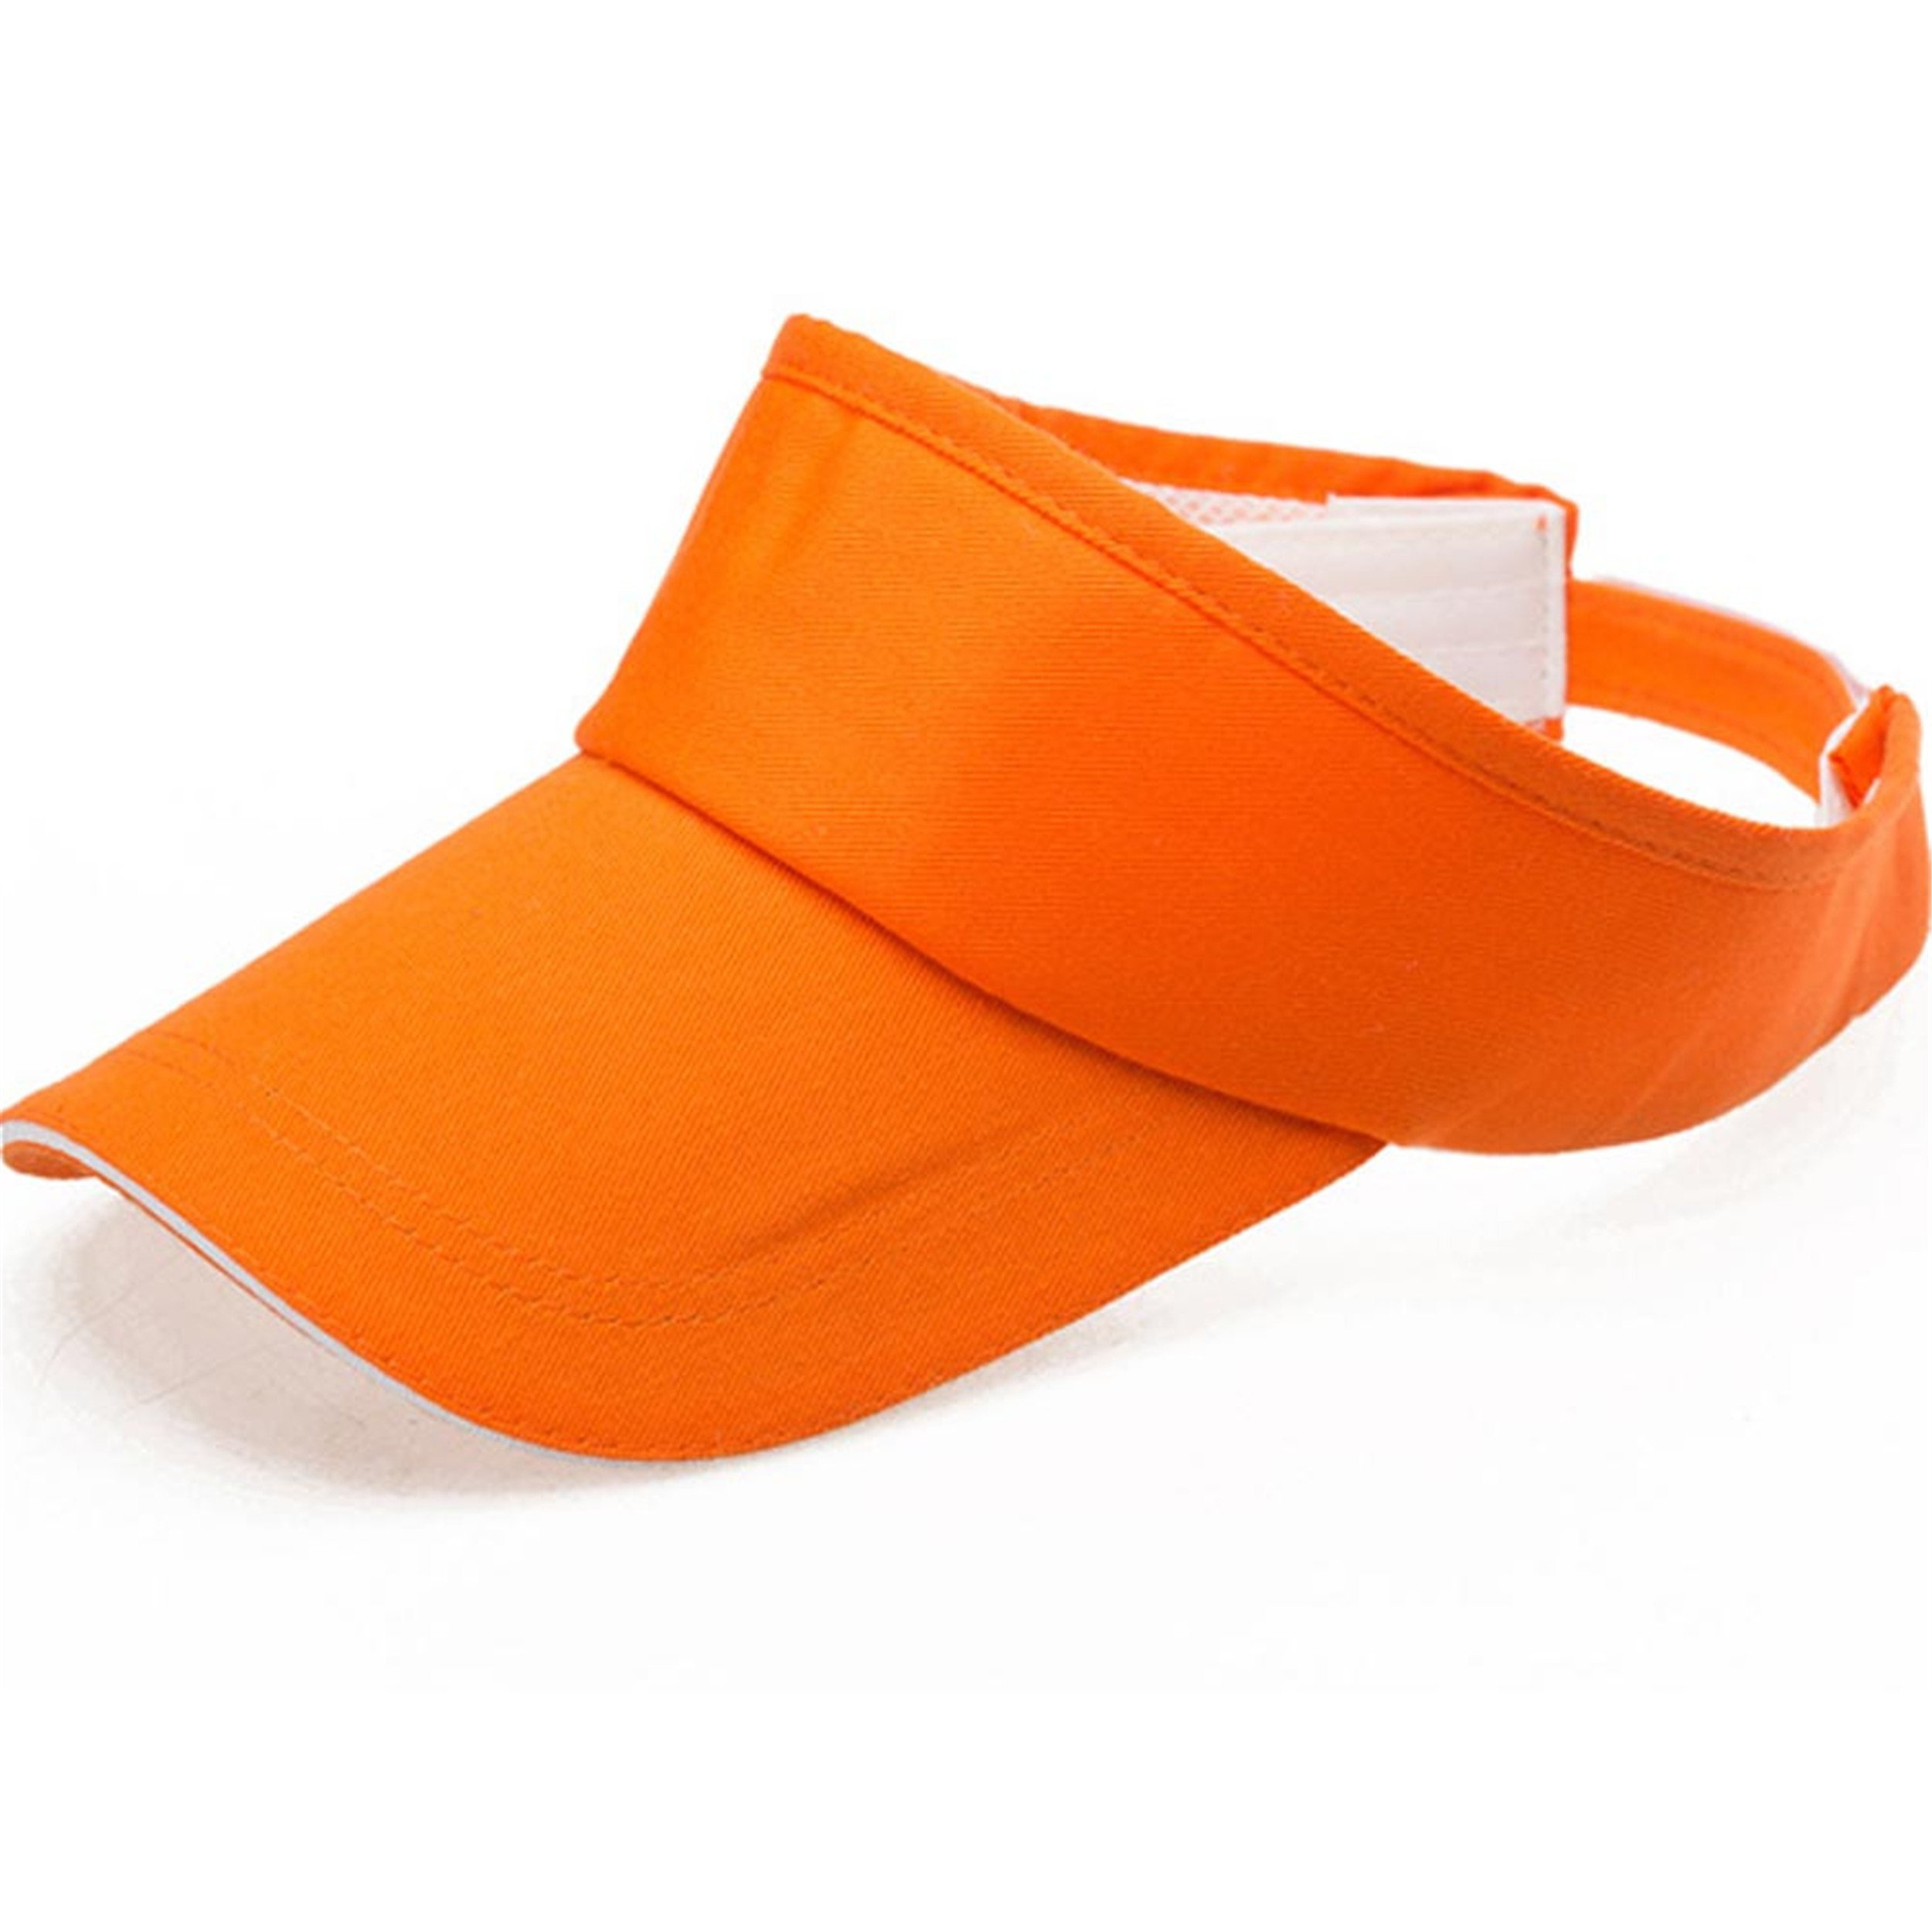 Summer Visor Sun Hat CapSFE- Kid Summer Visor Unisex-child Sports Outdoor Sun Cap (Orange, Free Size)